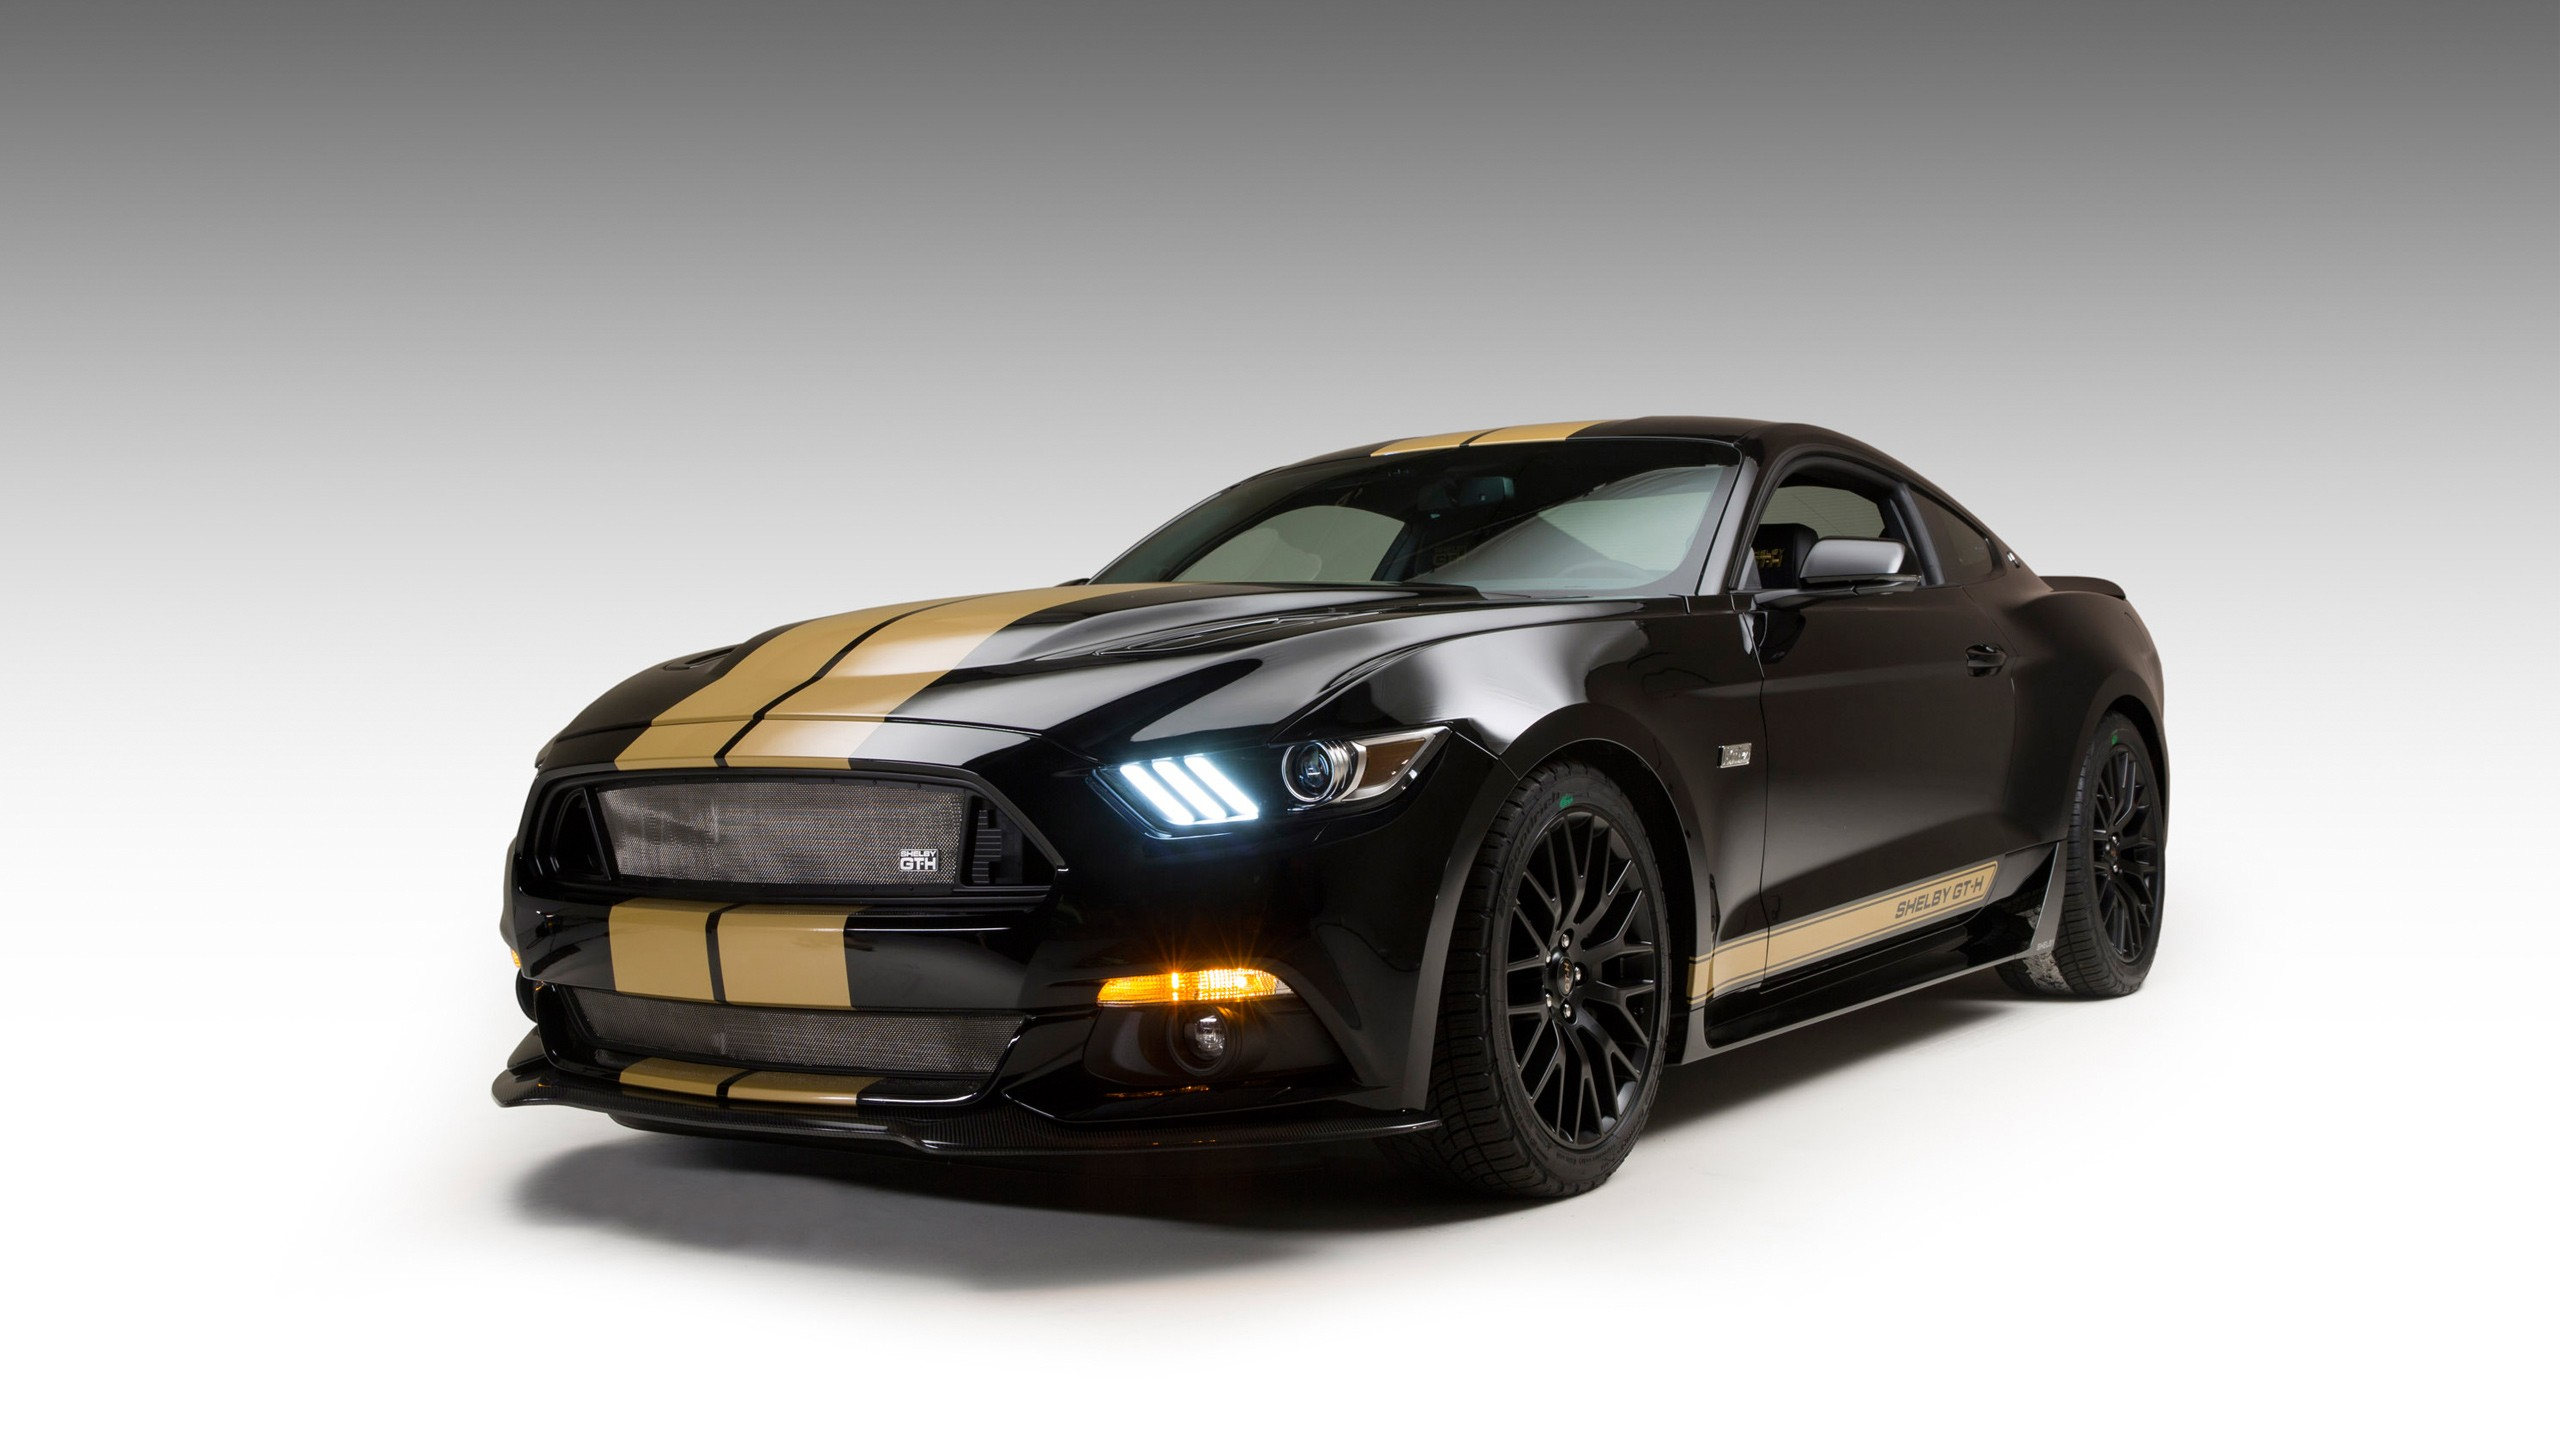 shelby mustang wallpaper - photo #20